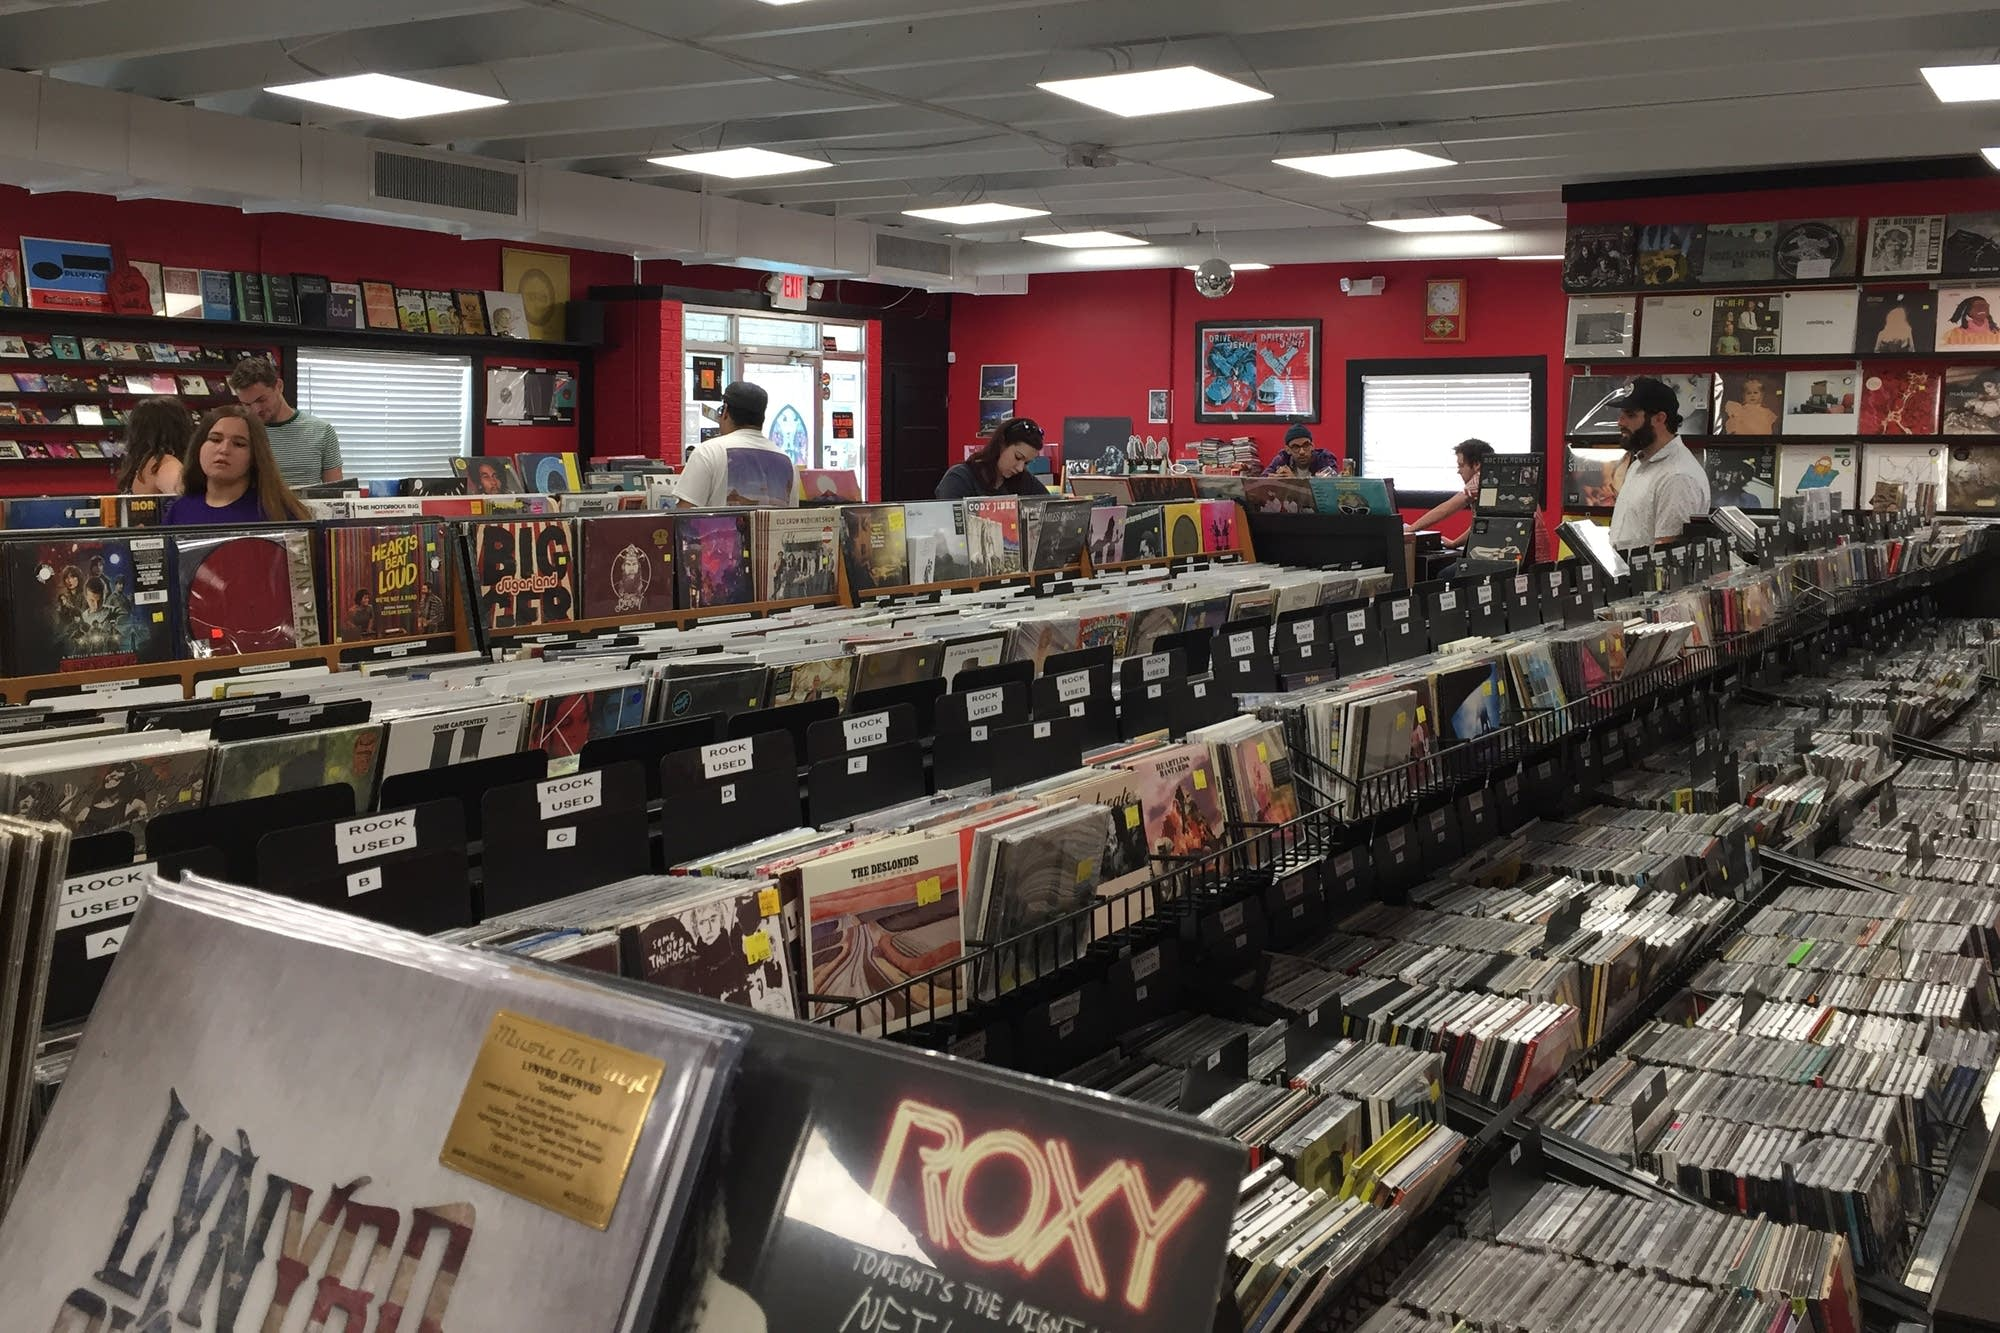 Lunchbox Records in Charlotte, N.C.